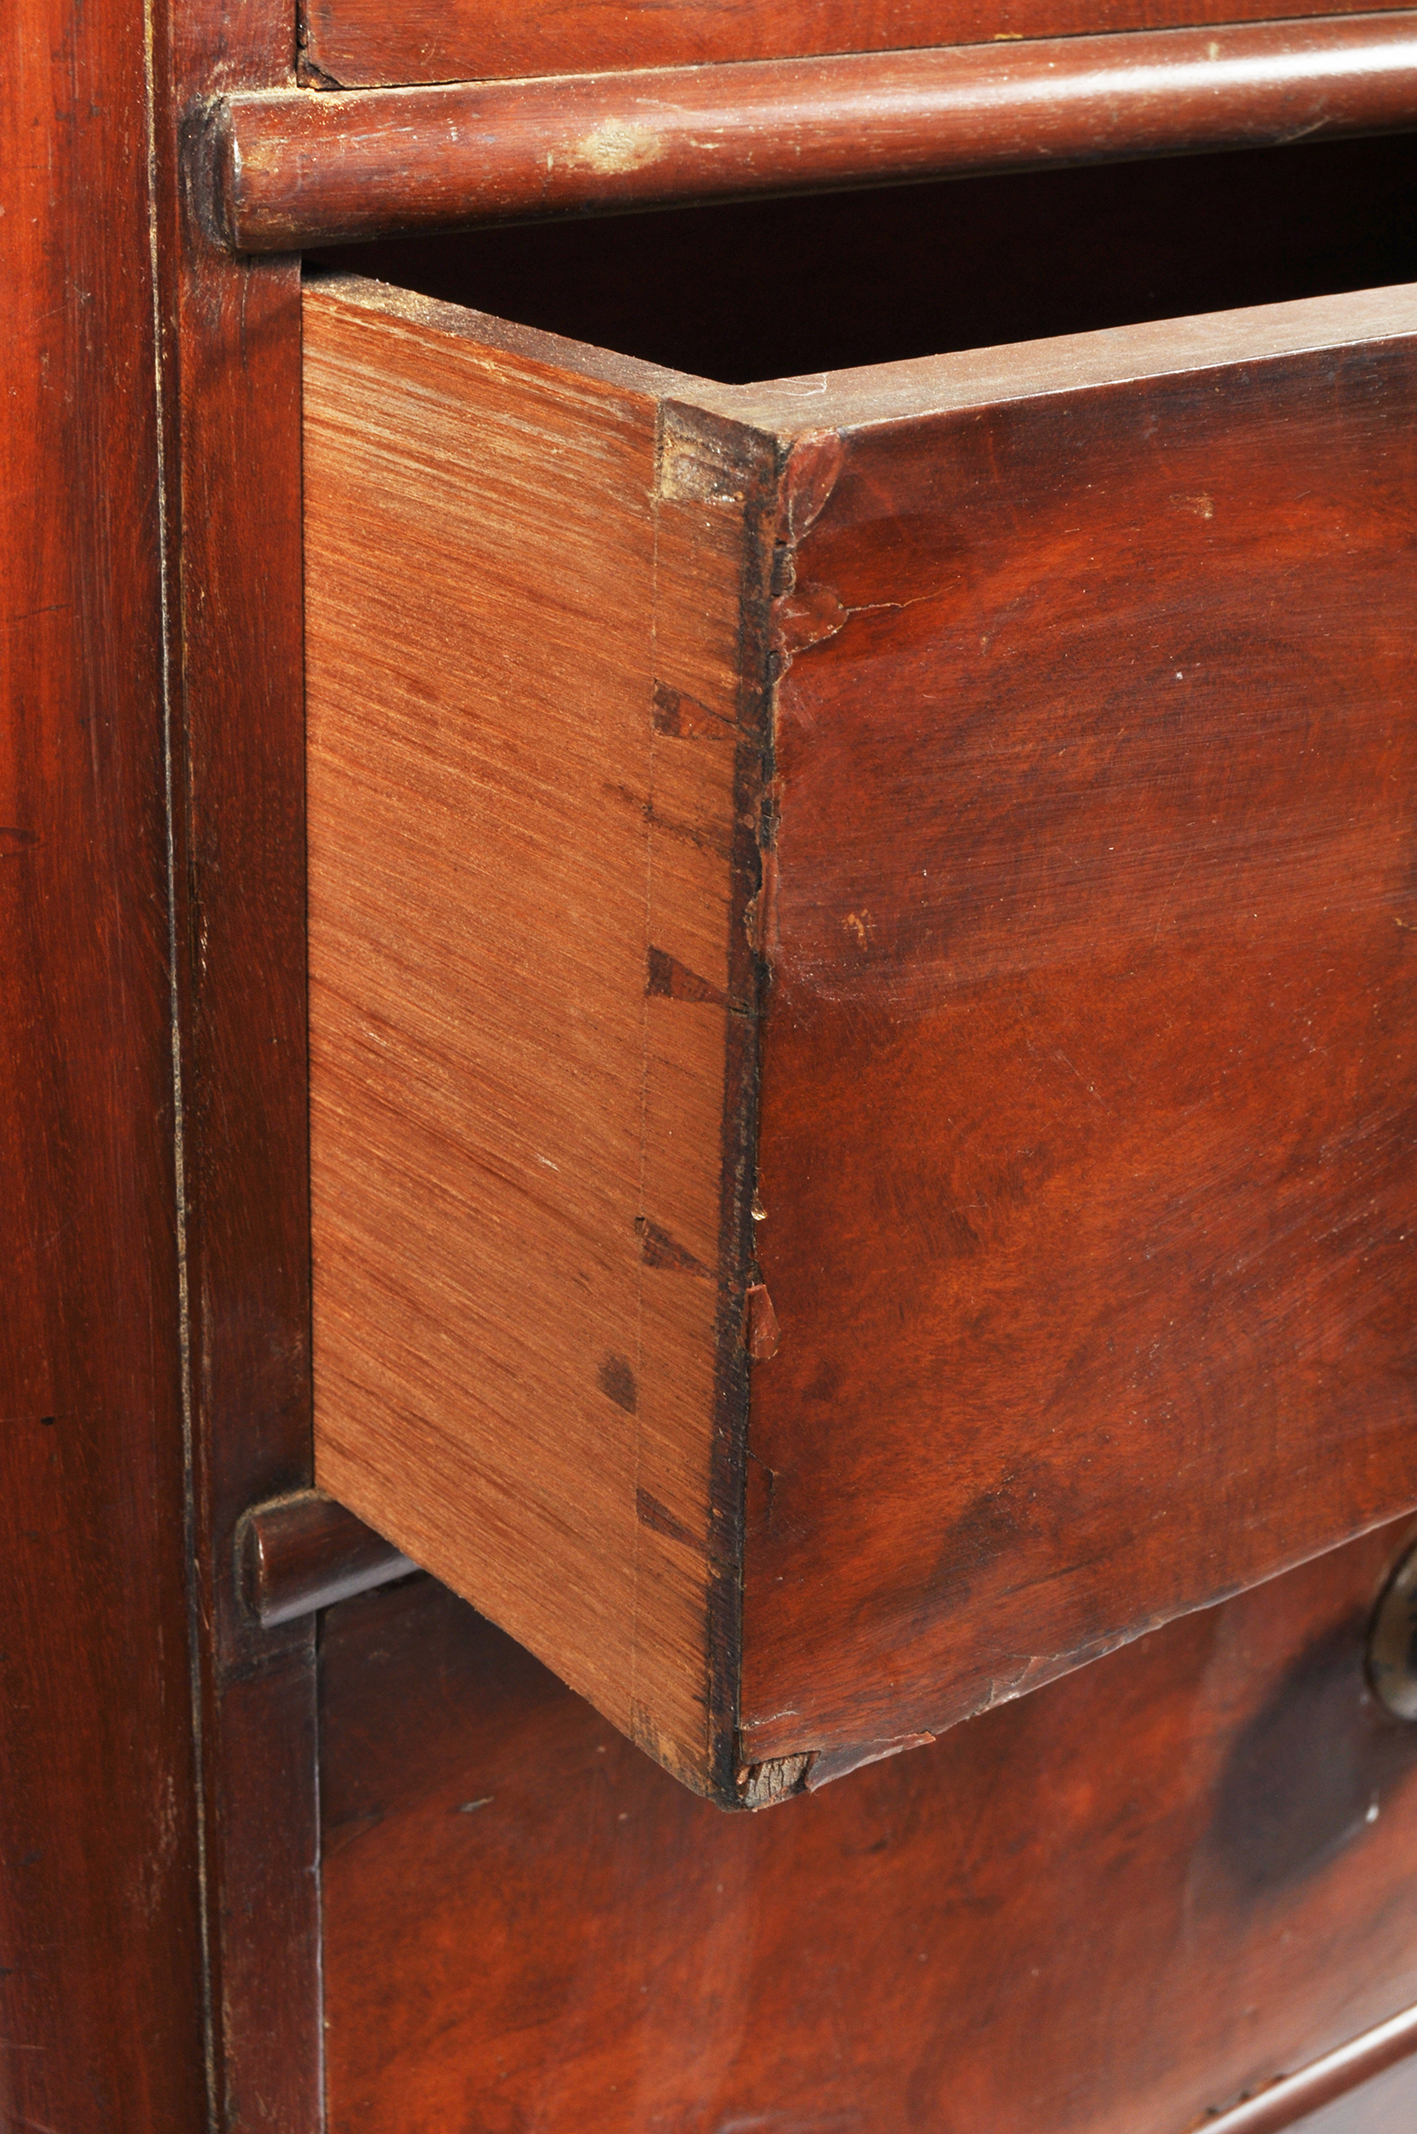 A Victorian mahogany chest of drawers, two short and four graduated long drawers with turned pulls, - Image 2 of 3